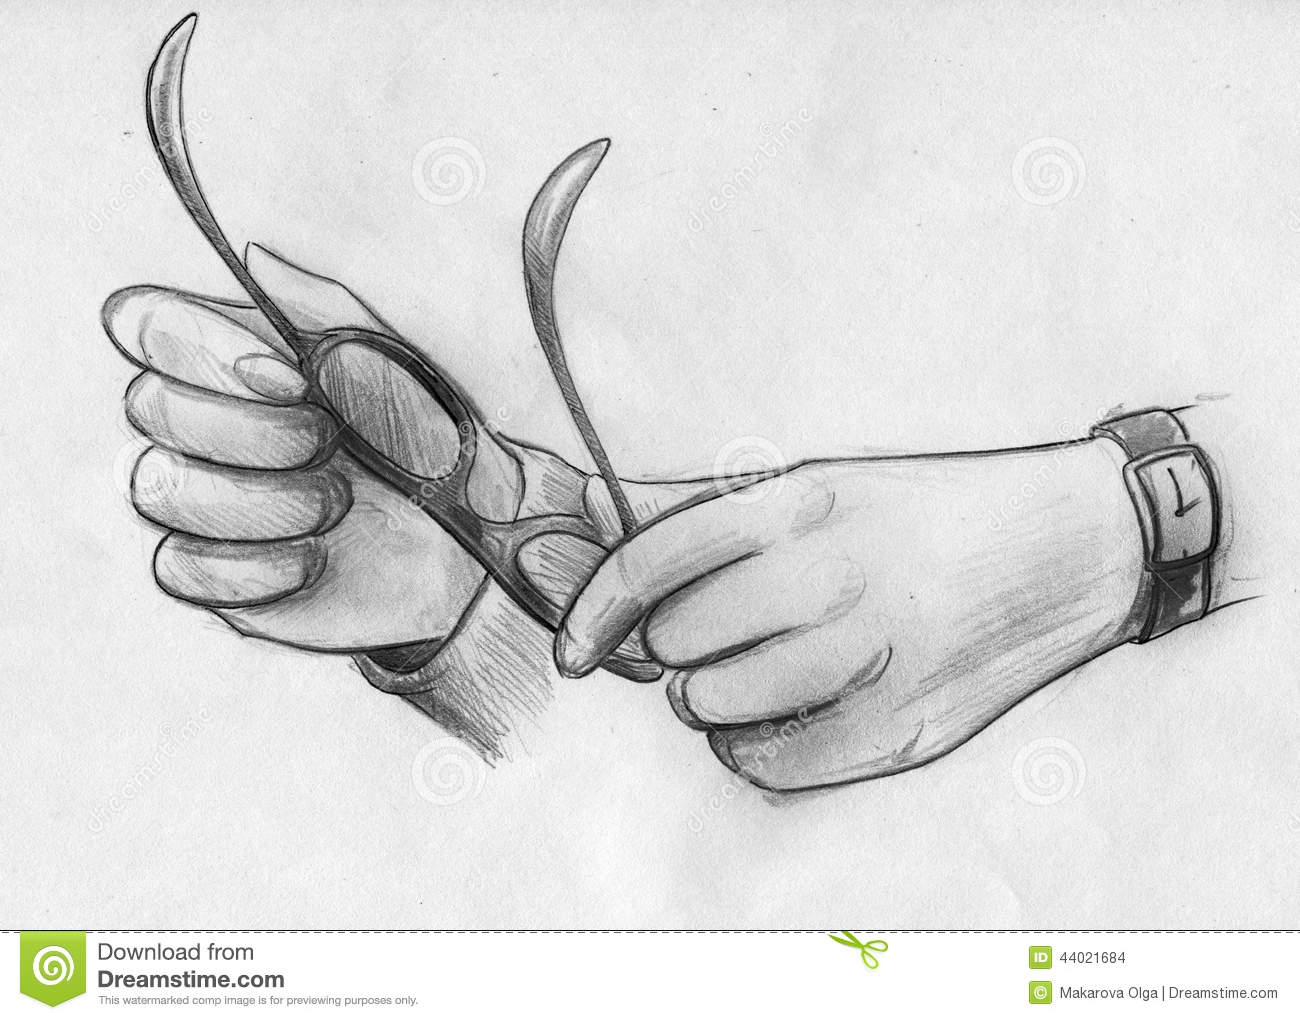 Hand Drawn Pencil Sketch Of Female Hands Holding Glasses With A Watch